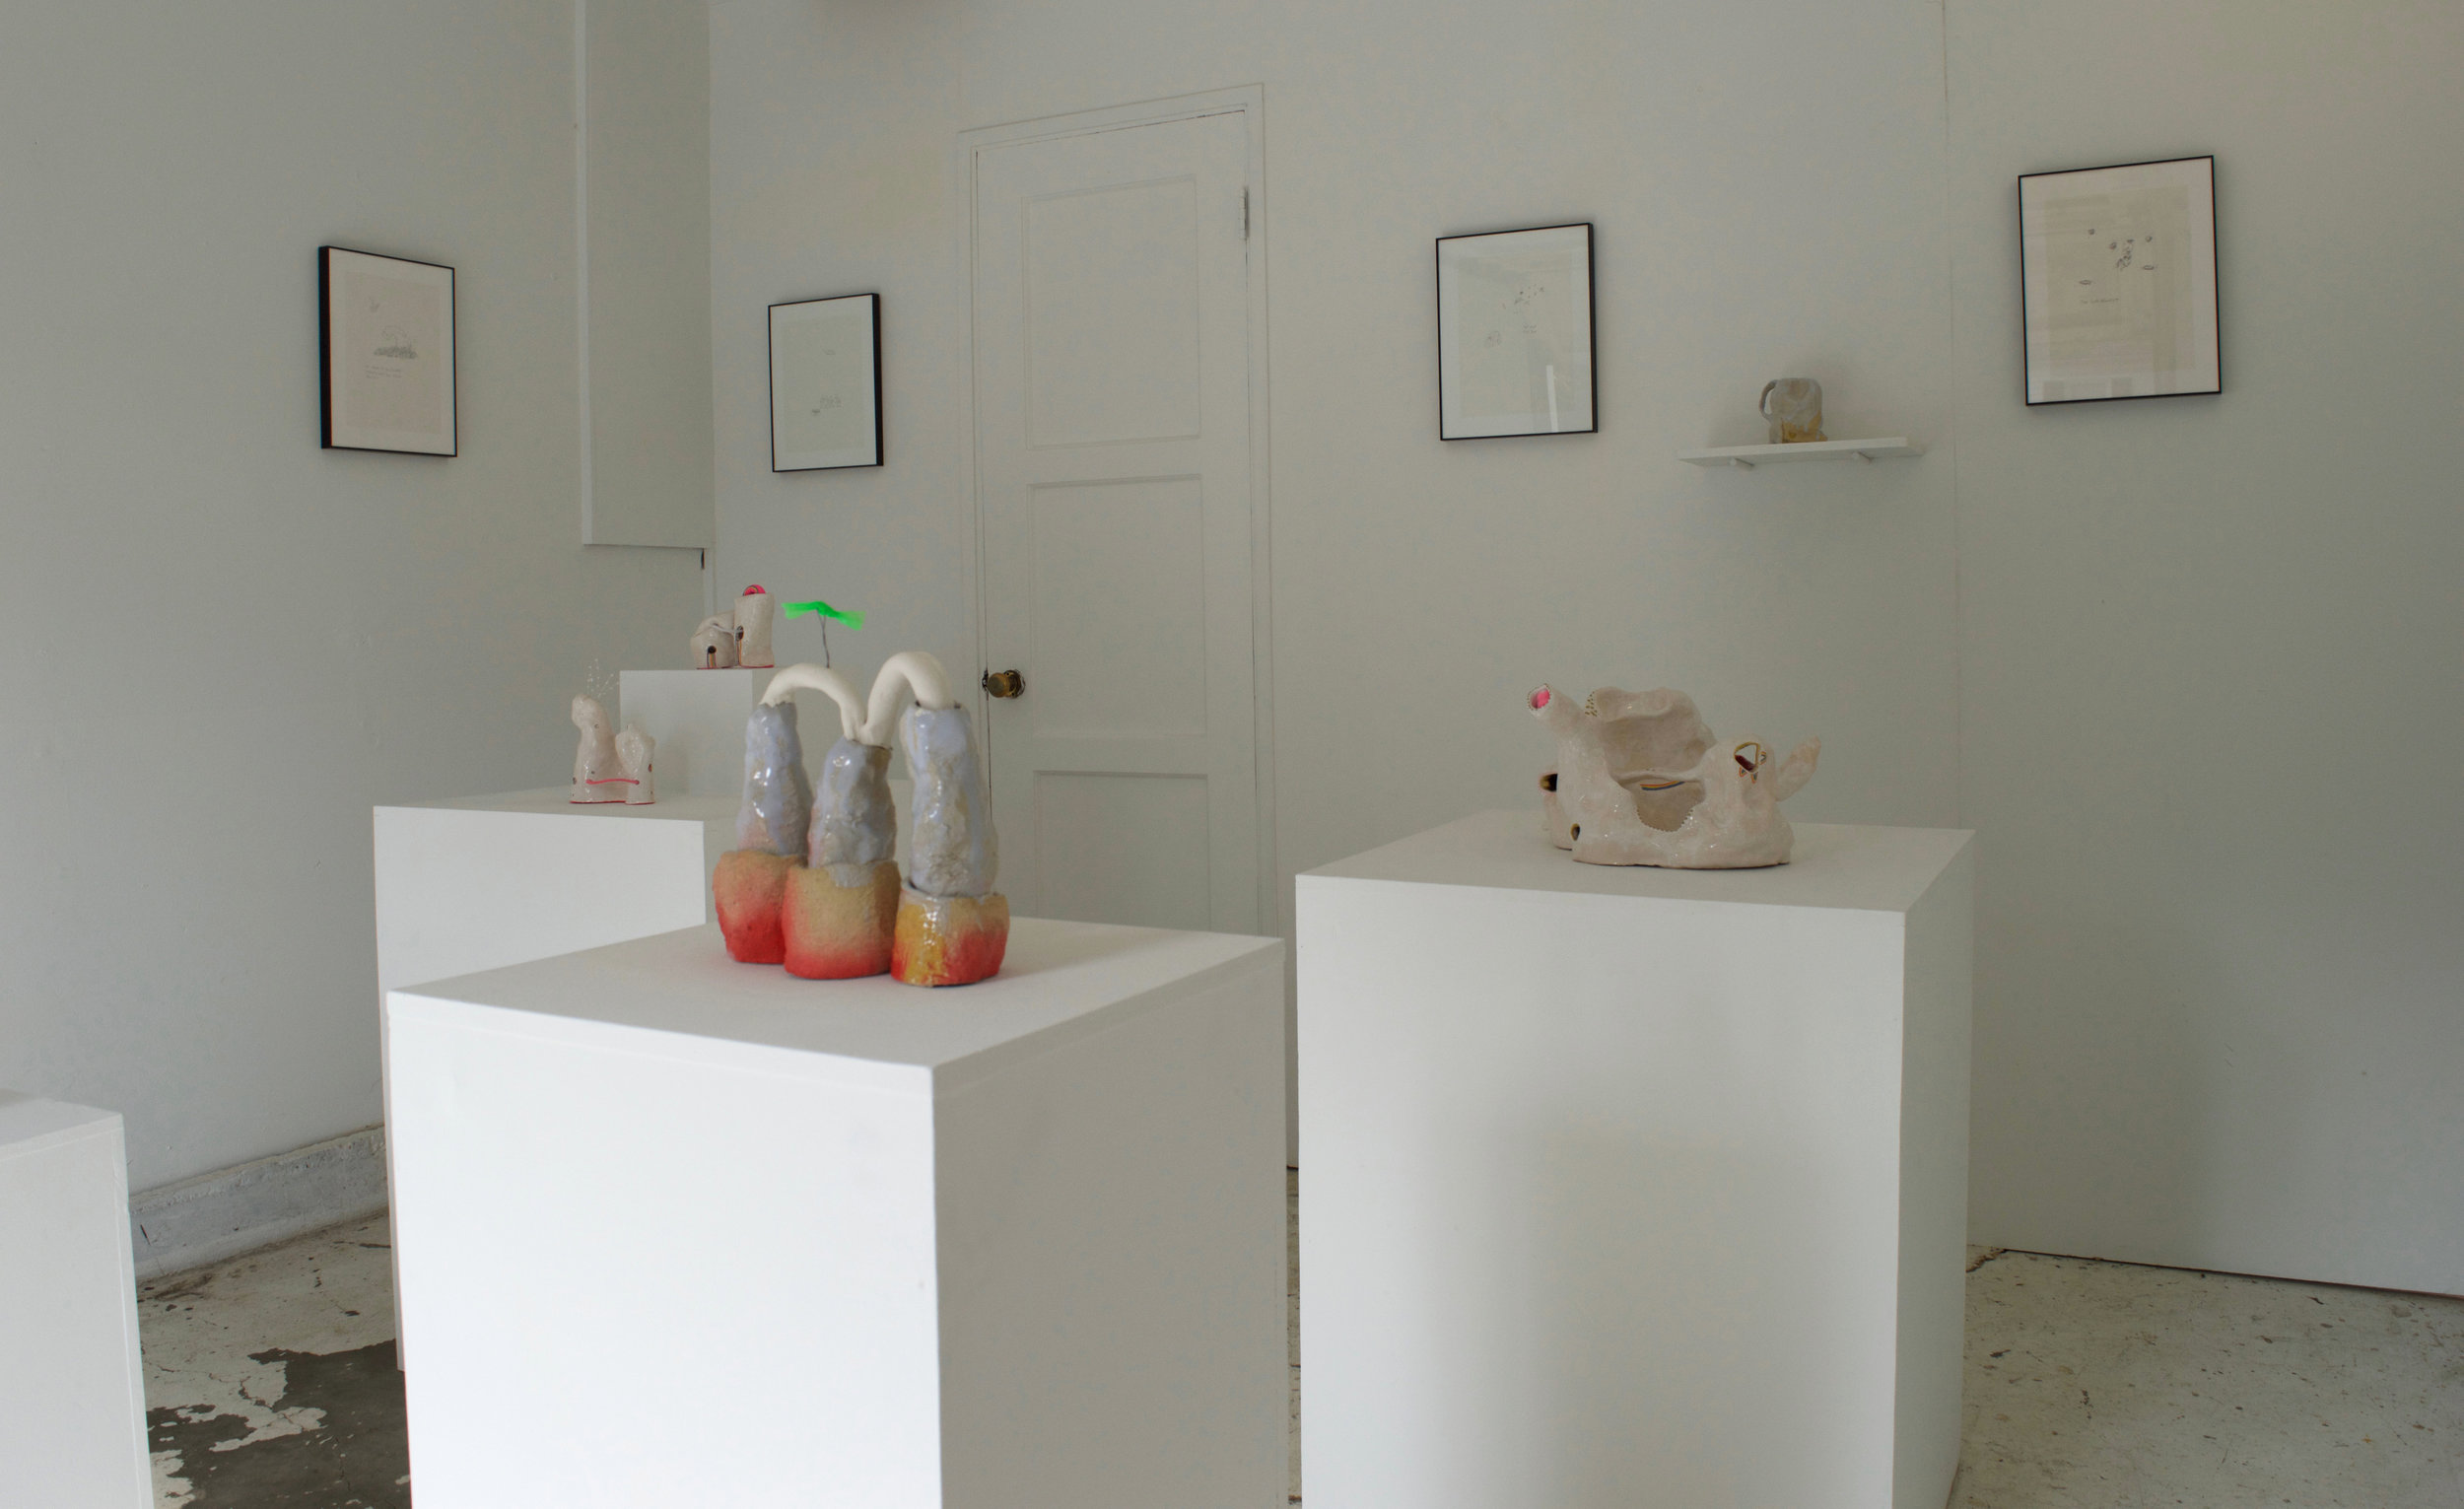 Installation View_Impossible Fiction 3.jpg